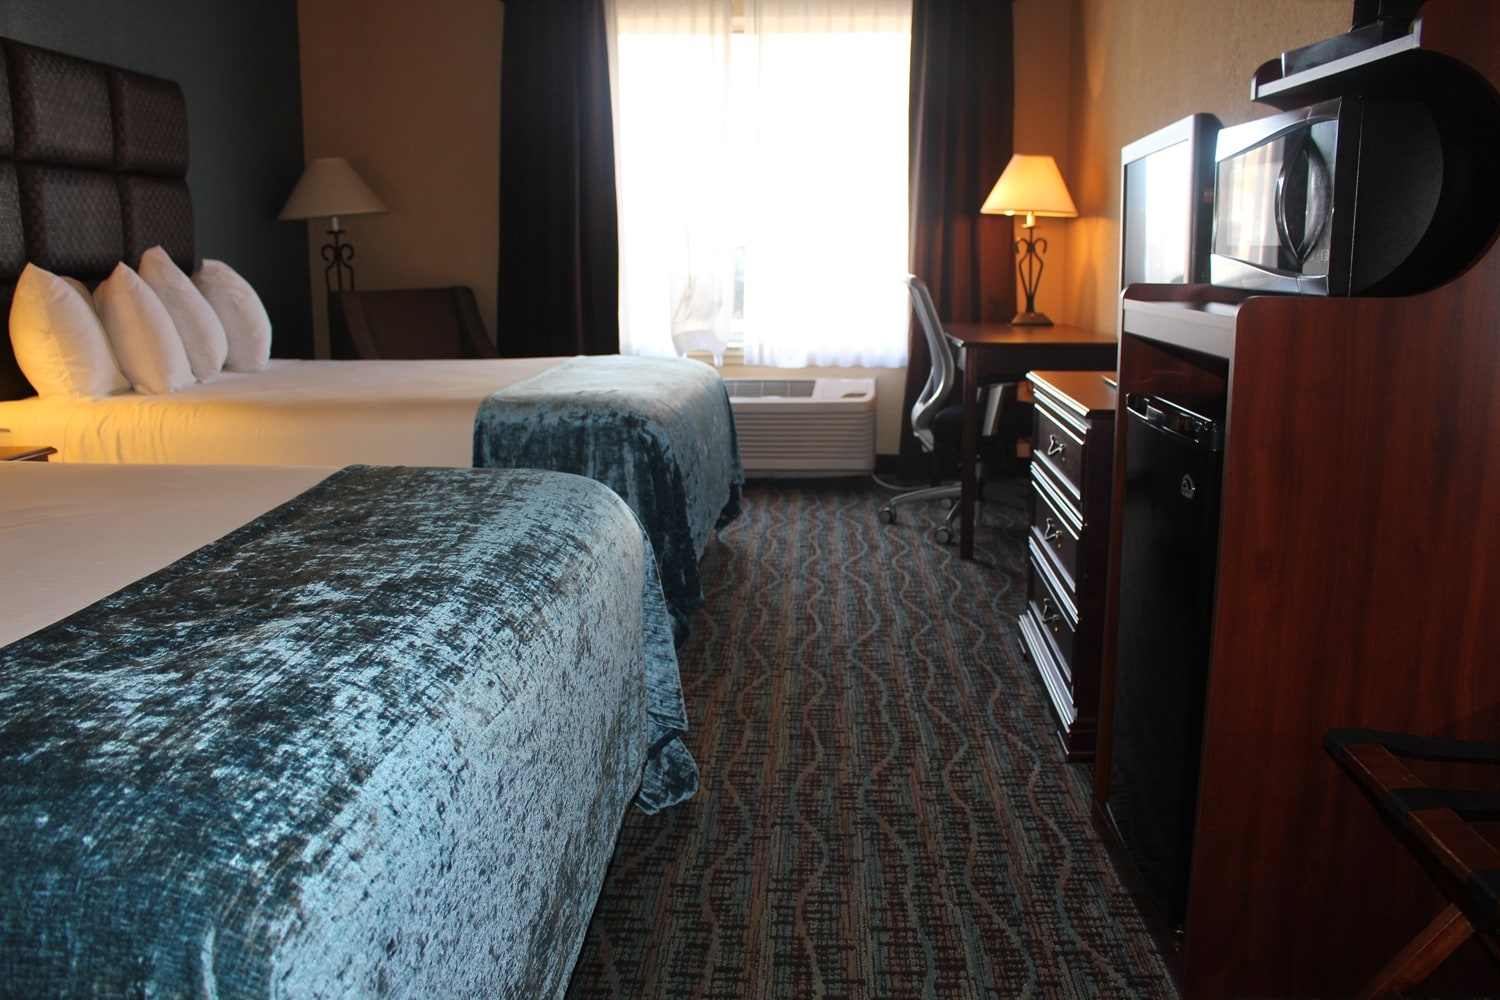 Sink Into Our Comfortable Beds Each Night And Wake Up Feeling Completely Refreshed